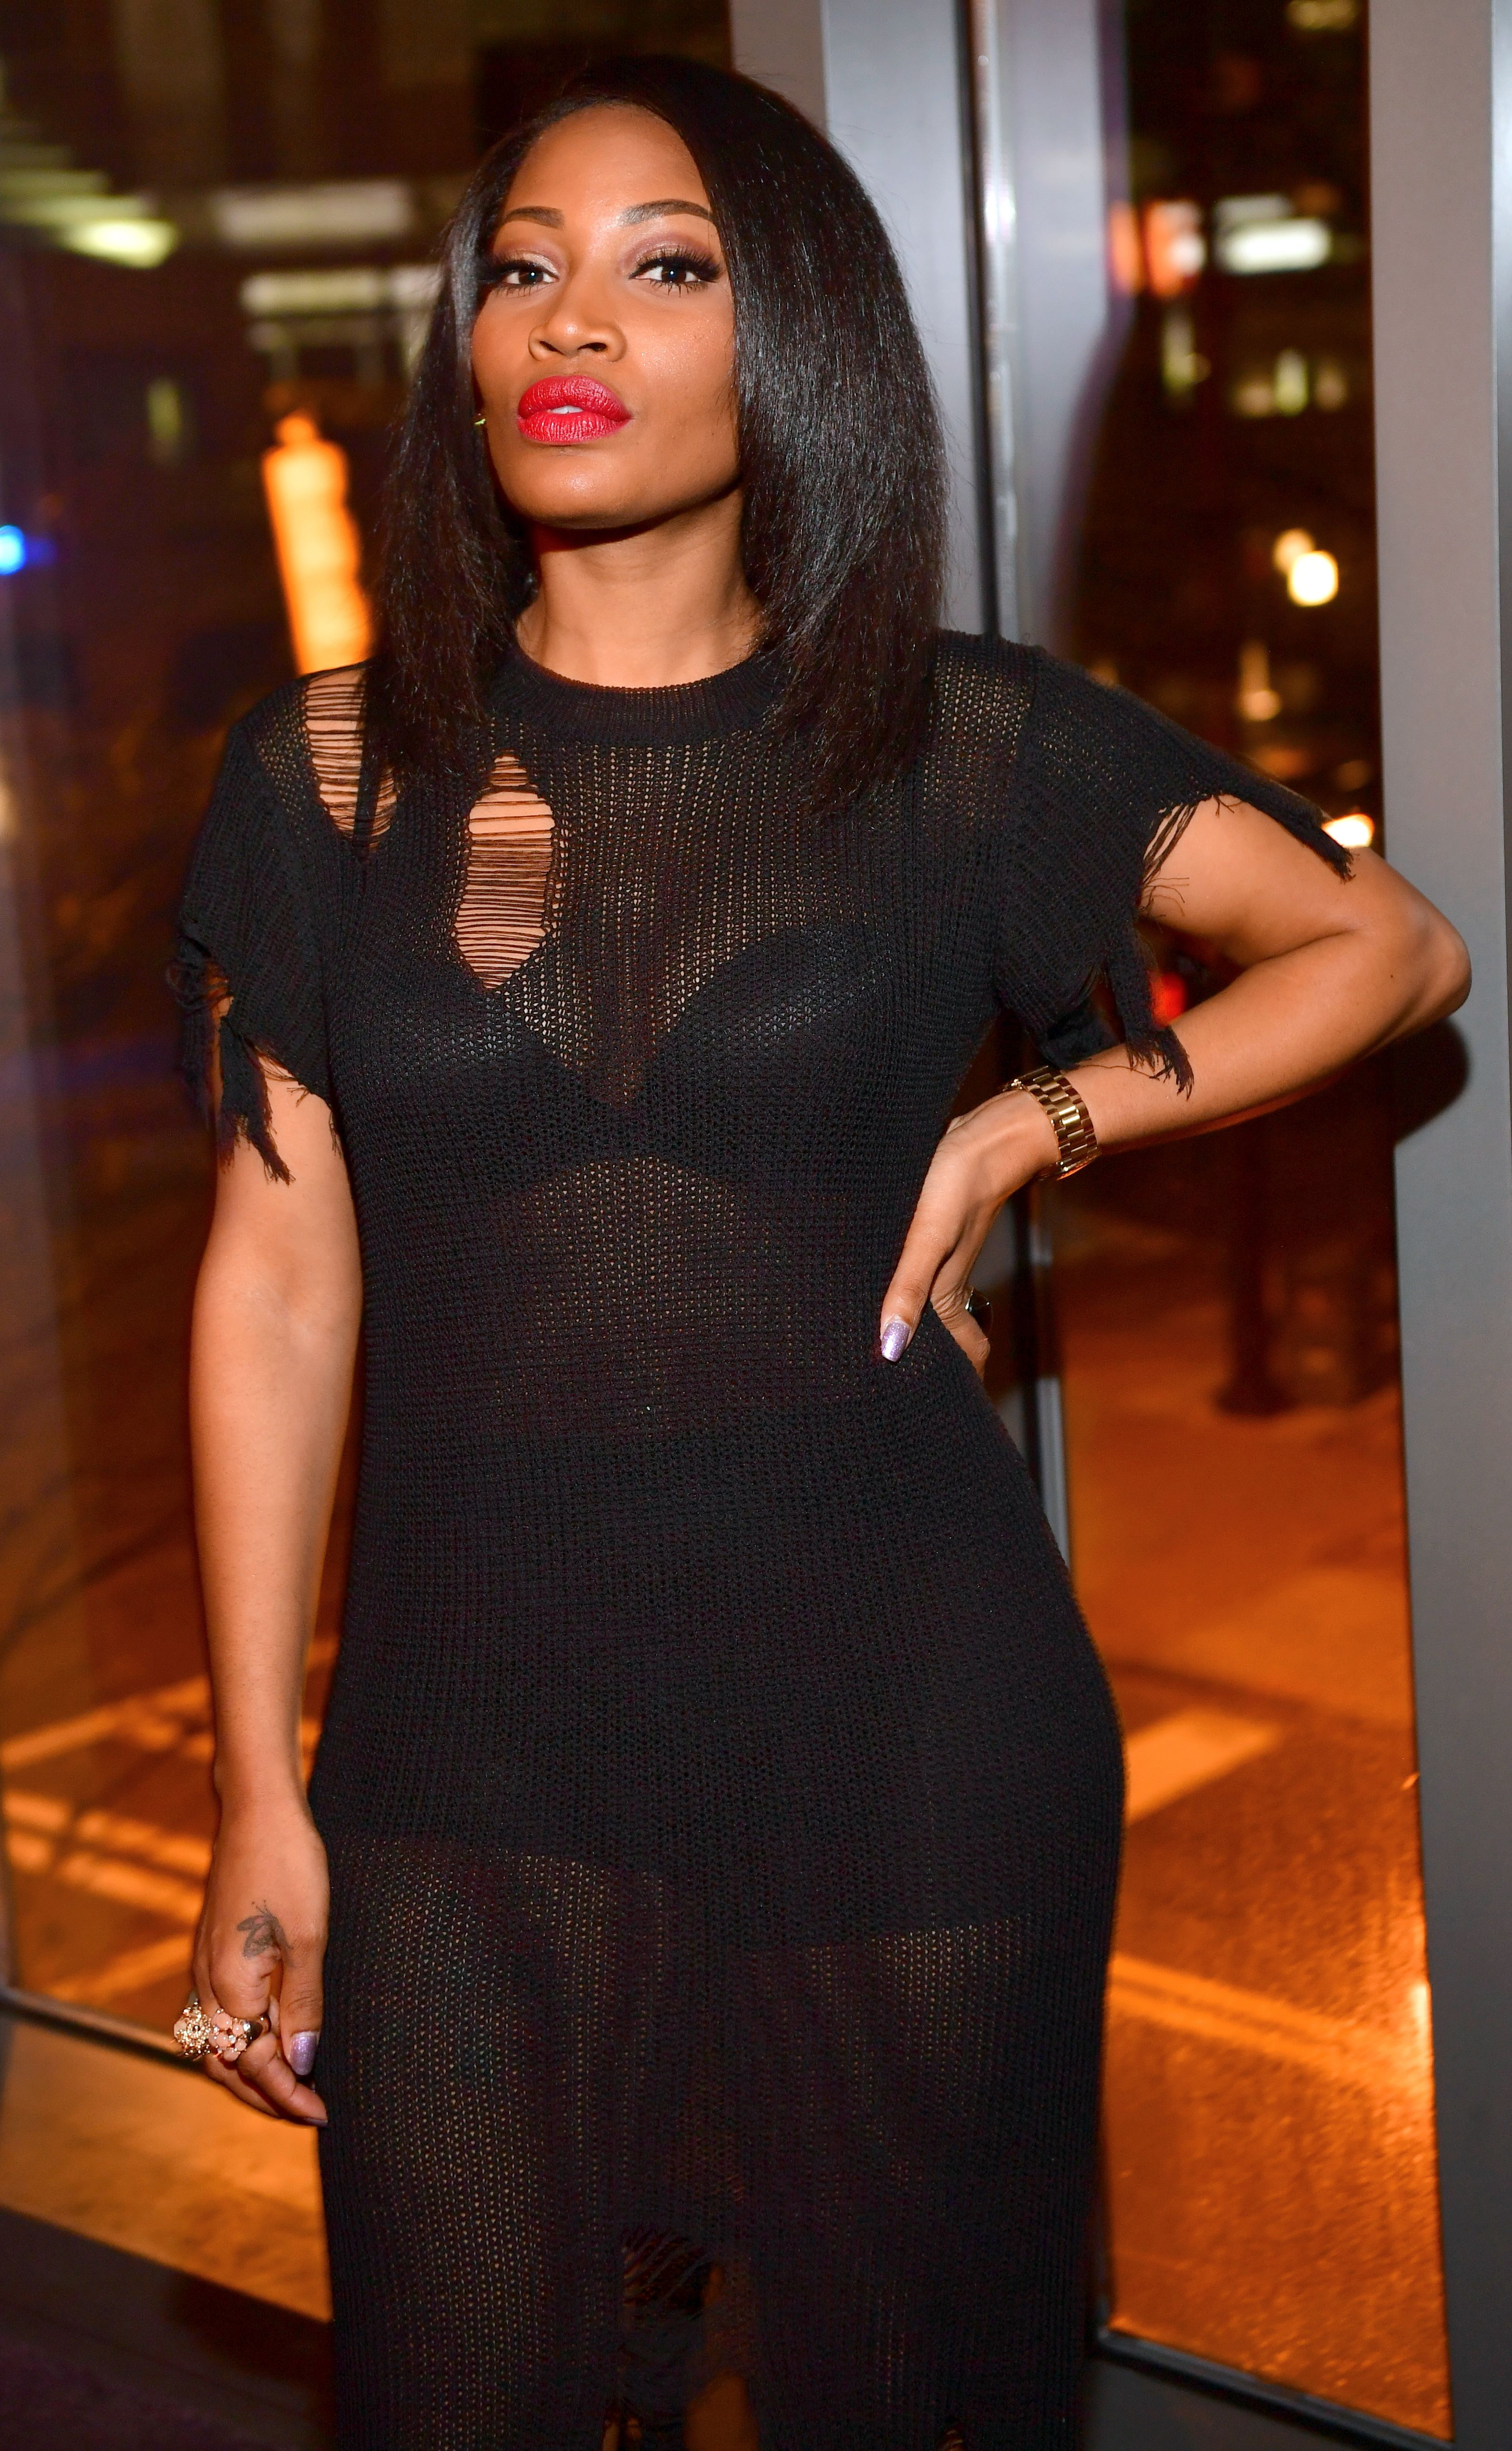 Erica Dixon at a party at the Gold Room on January 19, 2017 | Photo: Getty Images